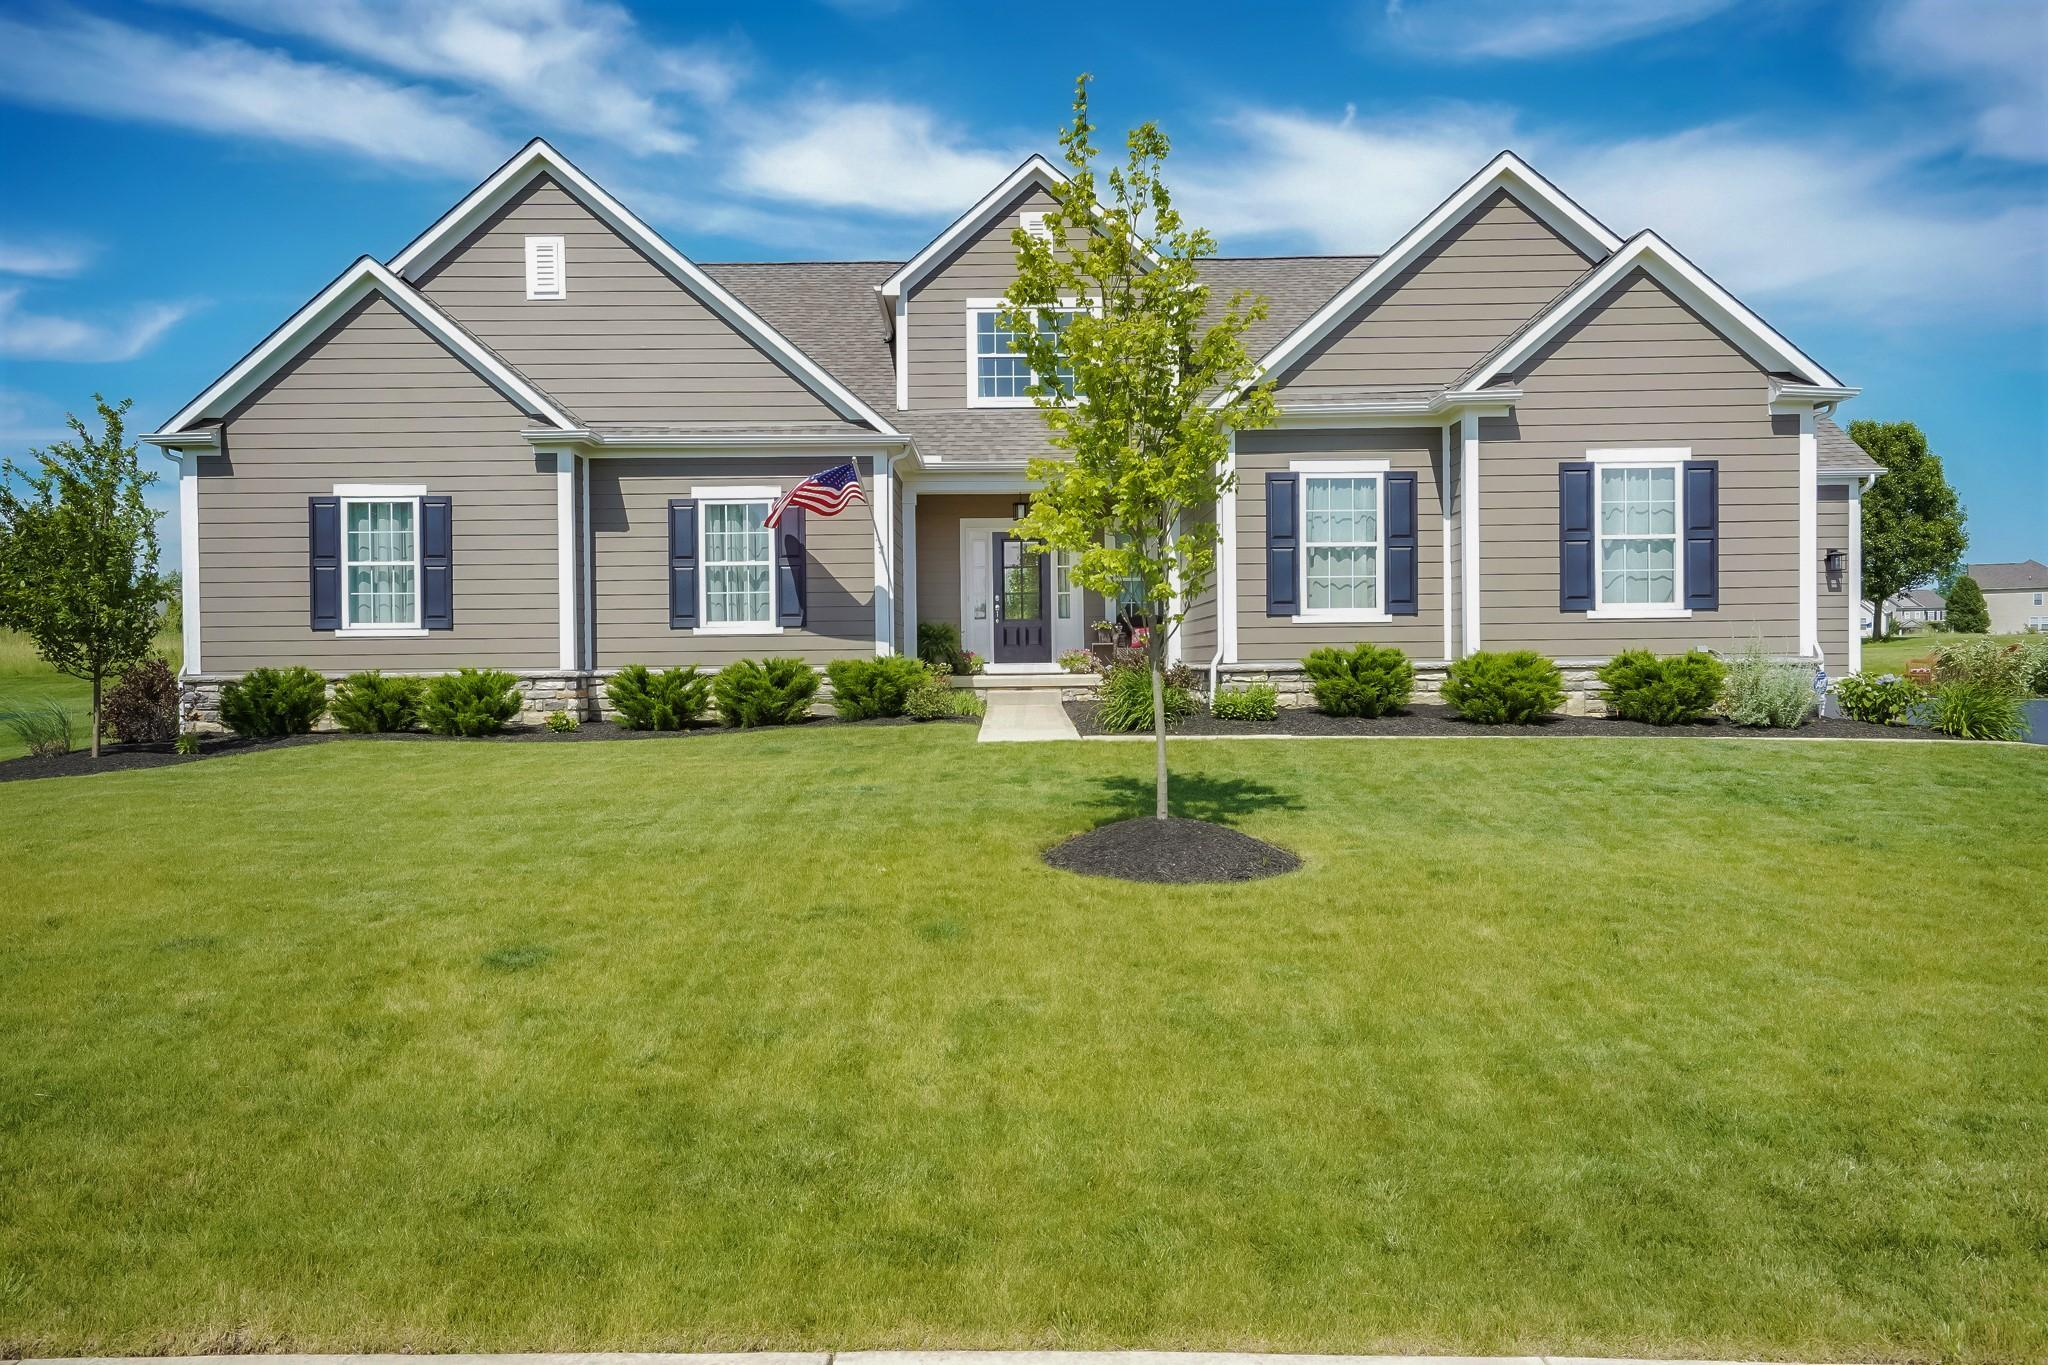 Photo of 7422 New Albany Links Drive, New Albany, OH 43054